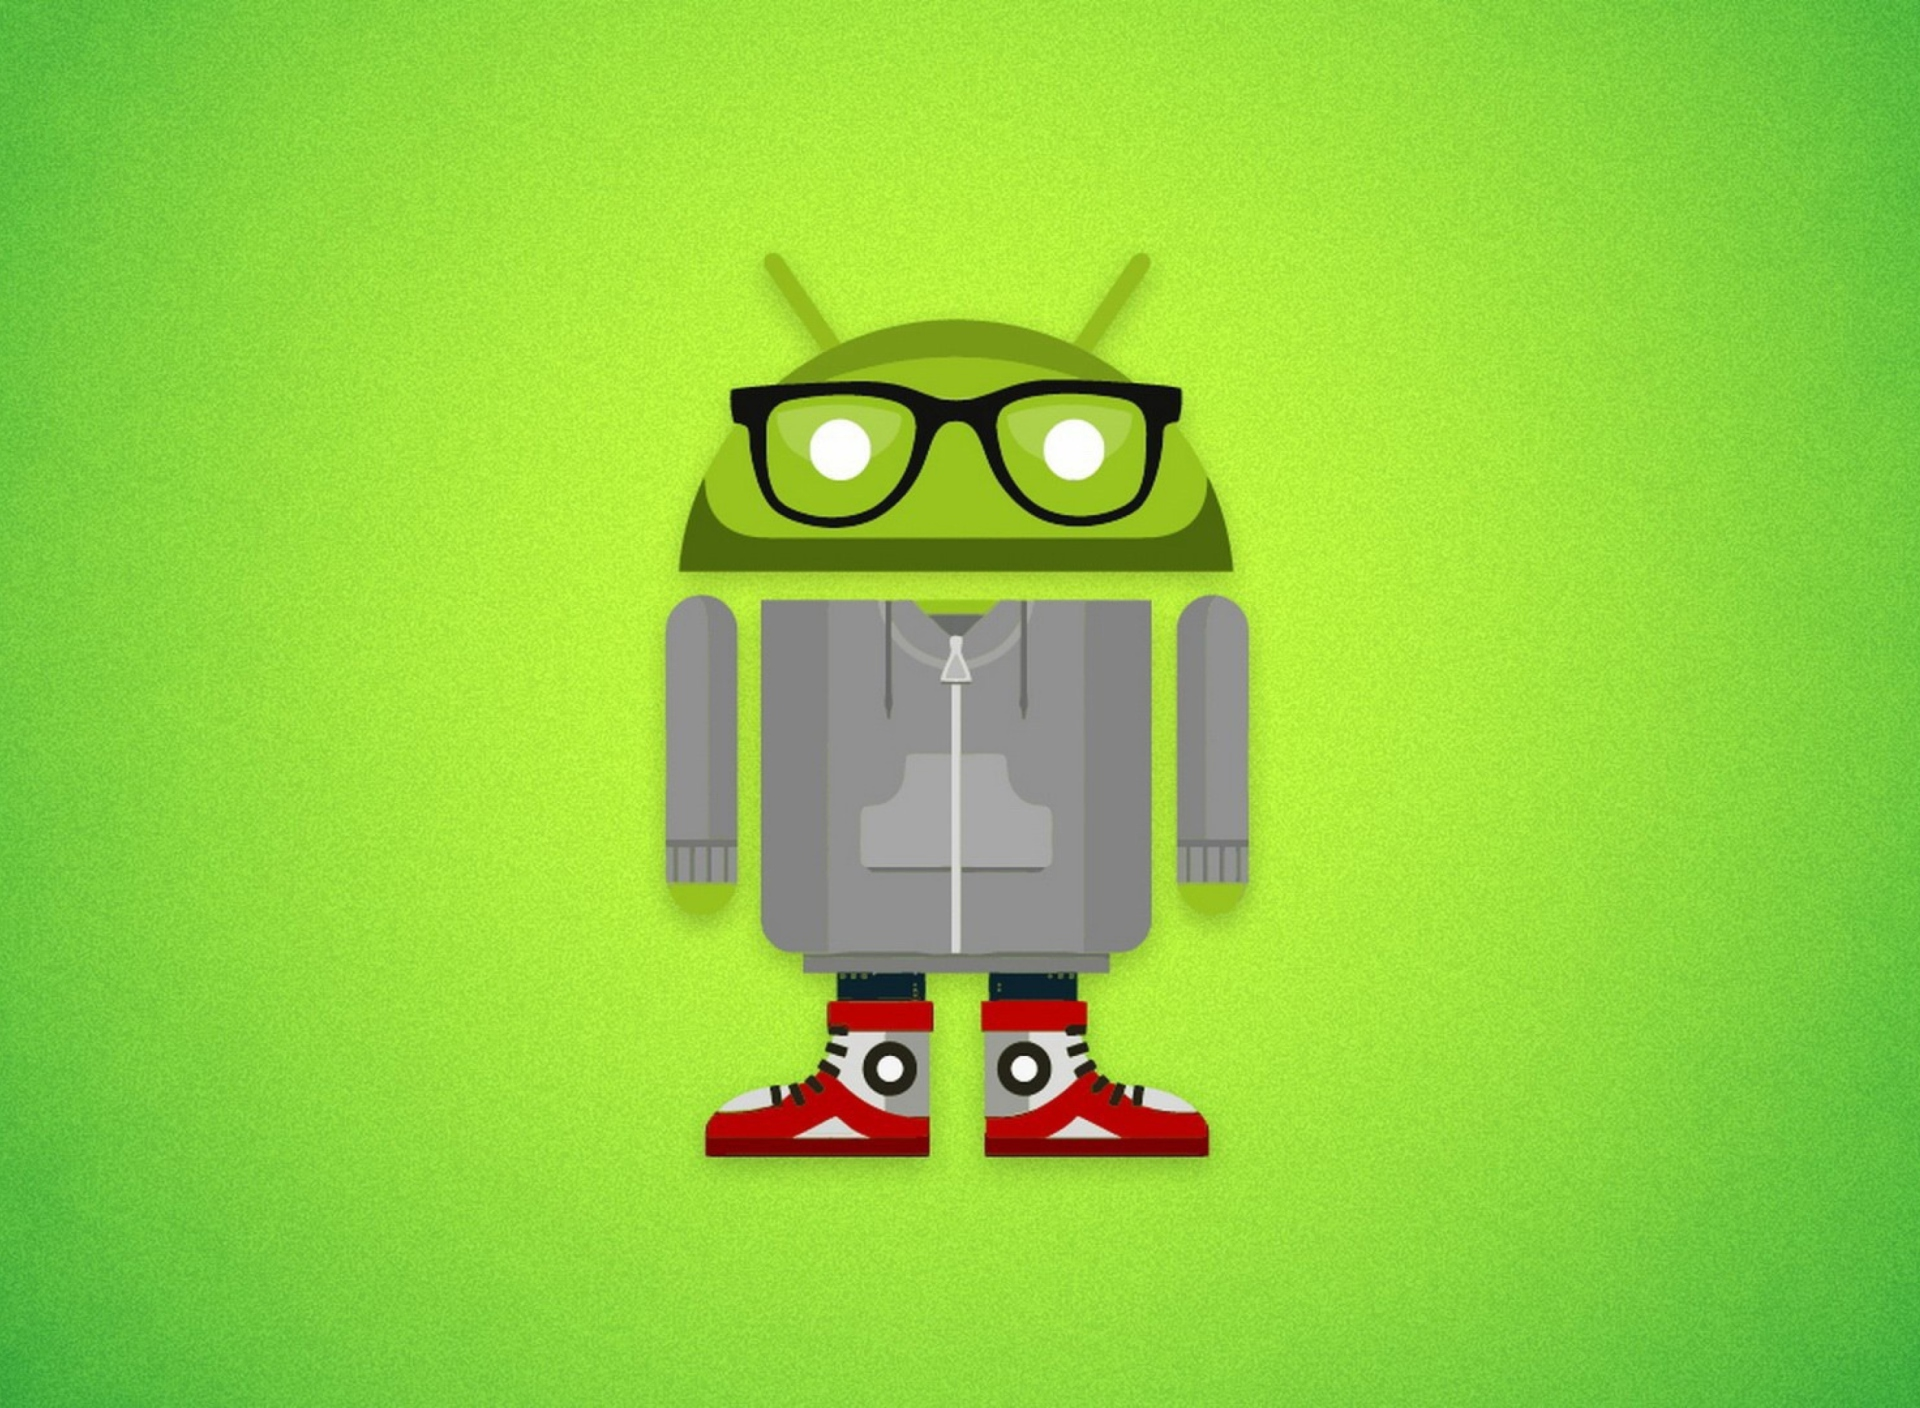 Hipster Wallpaper For Android: Hipster Android Wallpaper For Acer Iconia Tab A500